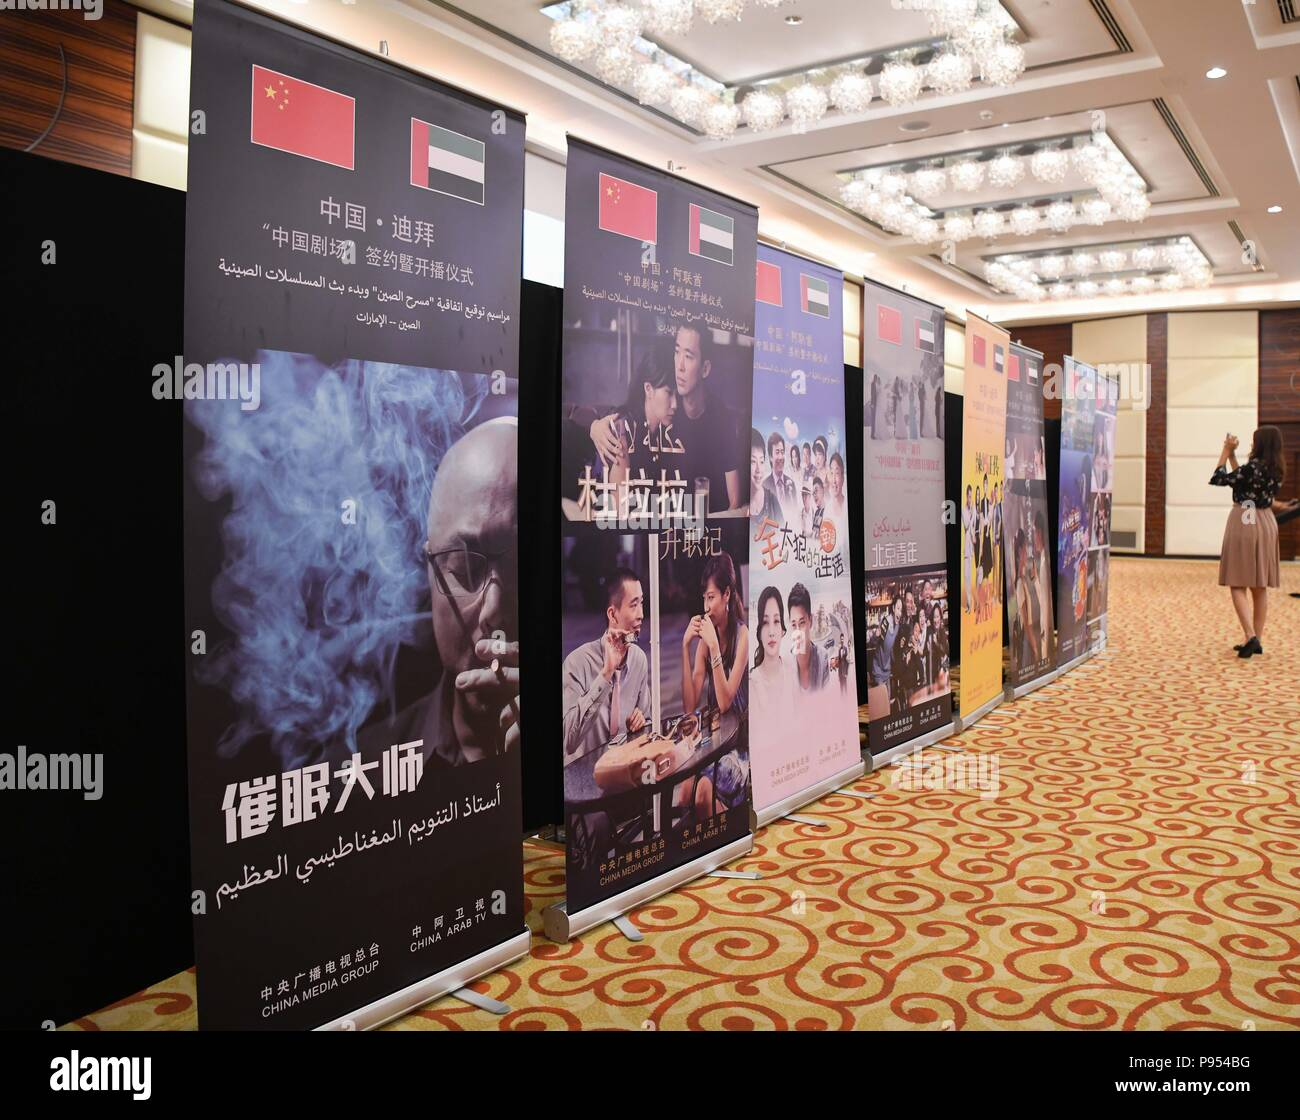 Media Boards Stock Photos Images Alamy Printed Circuit Board China Gua Dubai 14th July 2018 Photo Taken On 14 Shows Exhibition